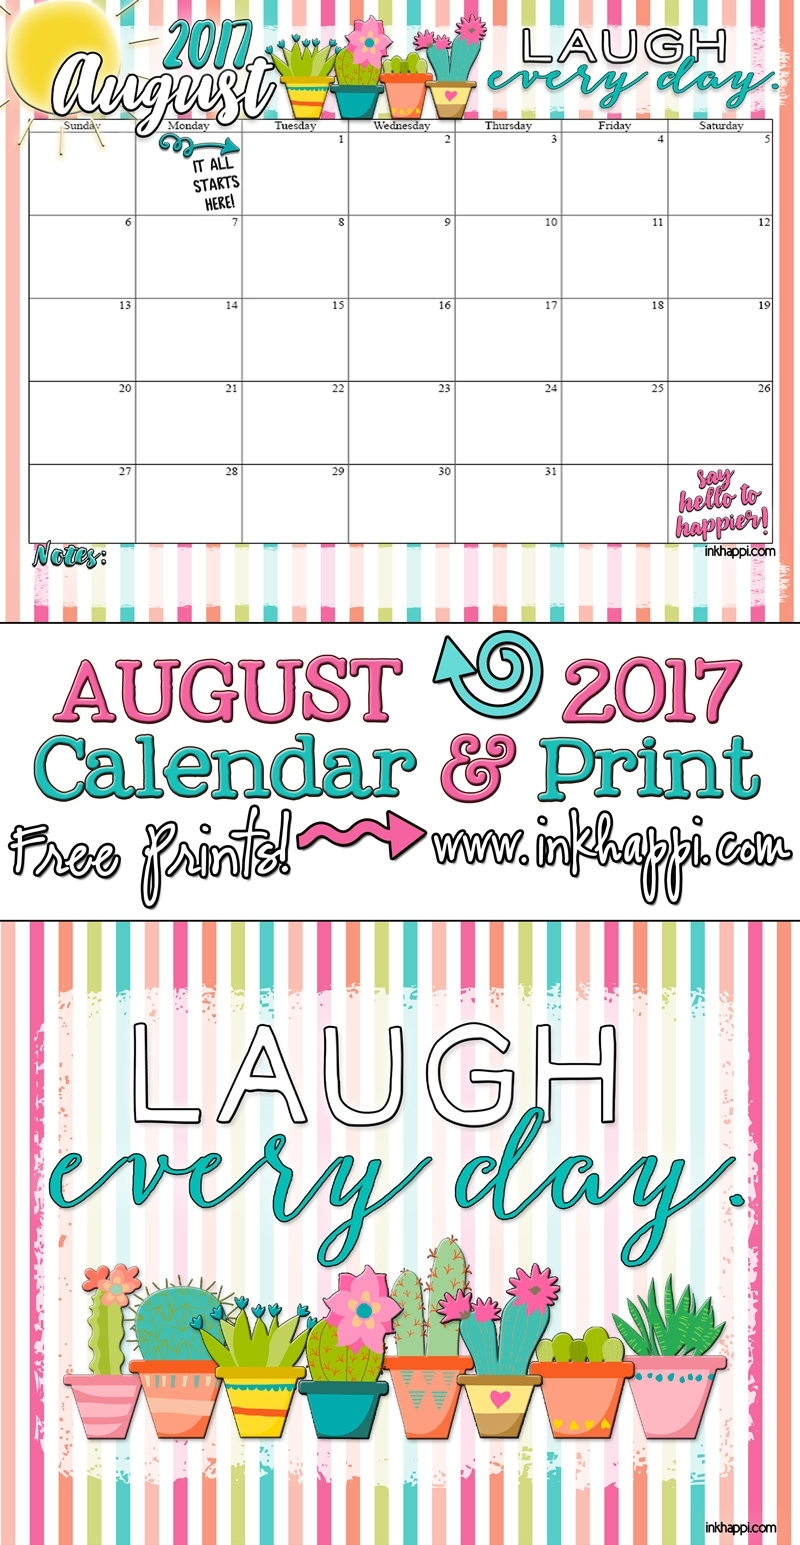 August 2017 Calendar Is Here With A Dose Of Good Medicine! - Inkhappi